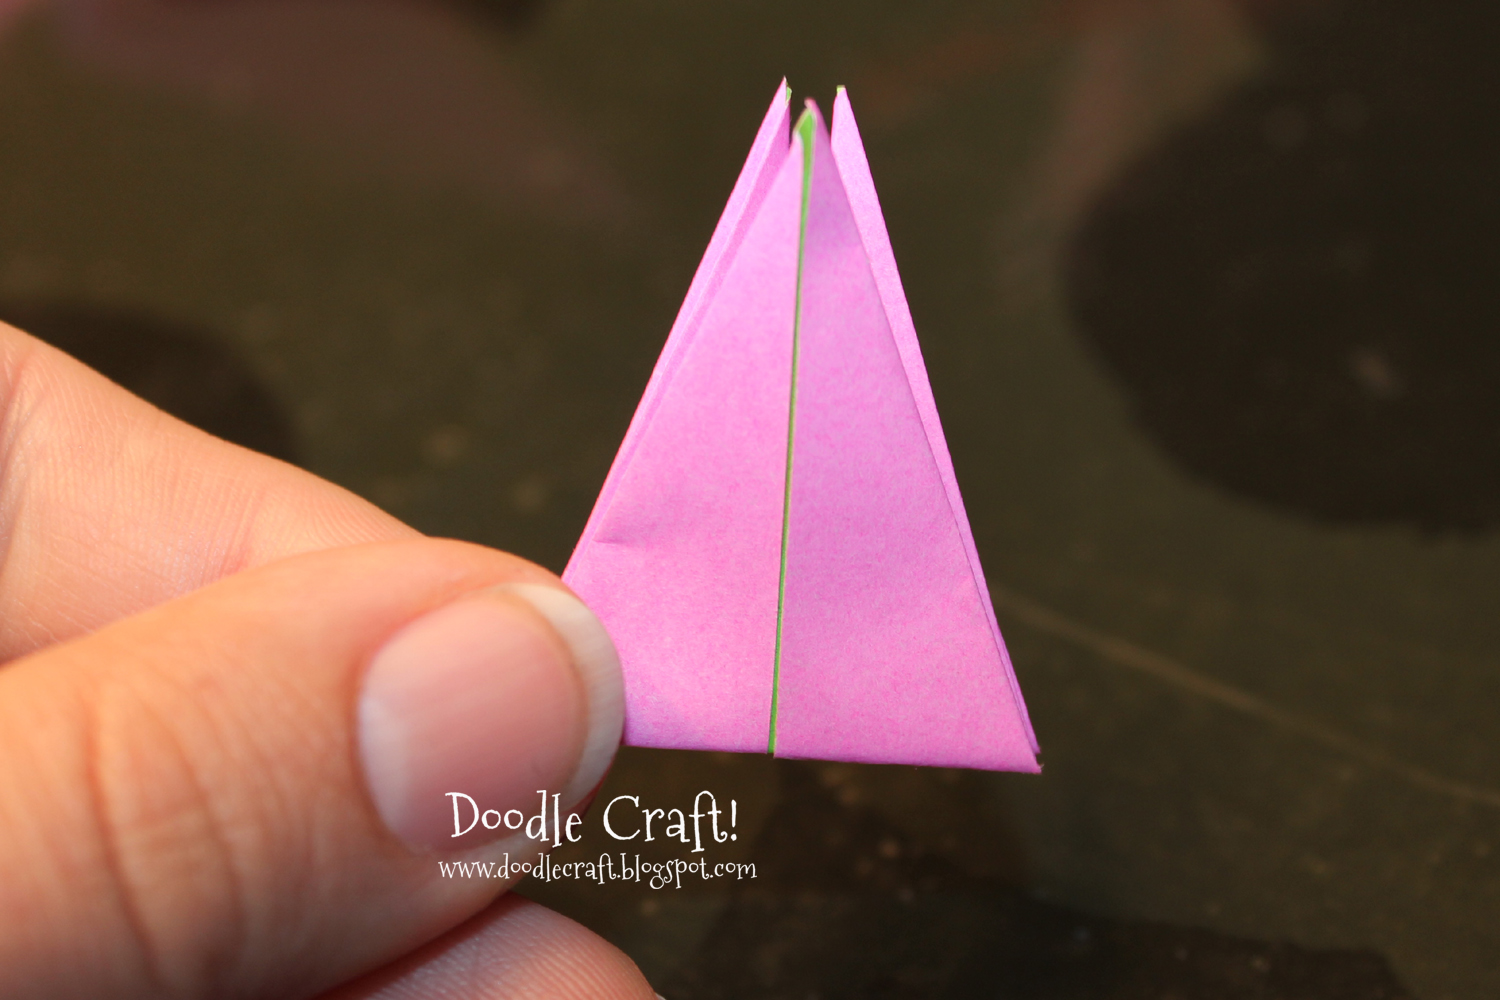 doodlecraft origami flapping paper crane mobile